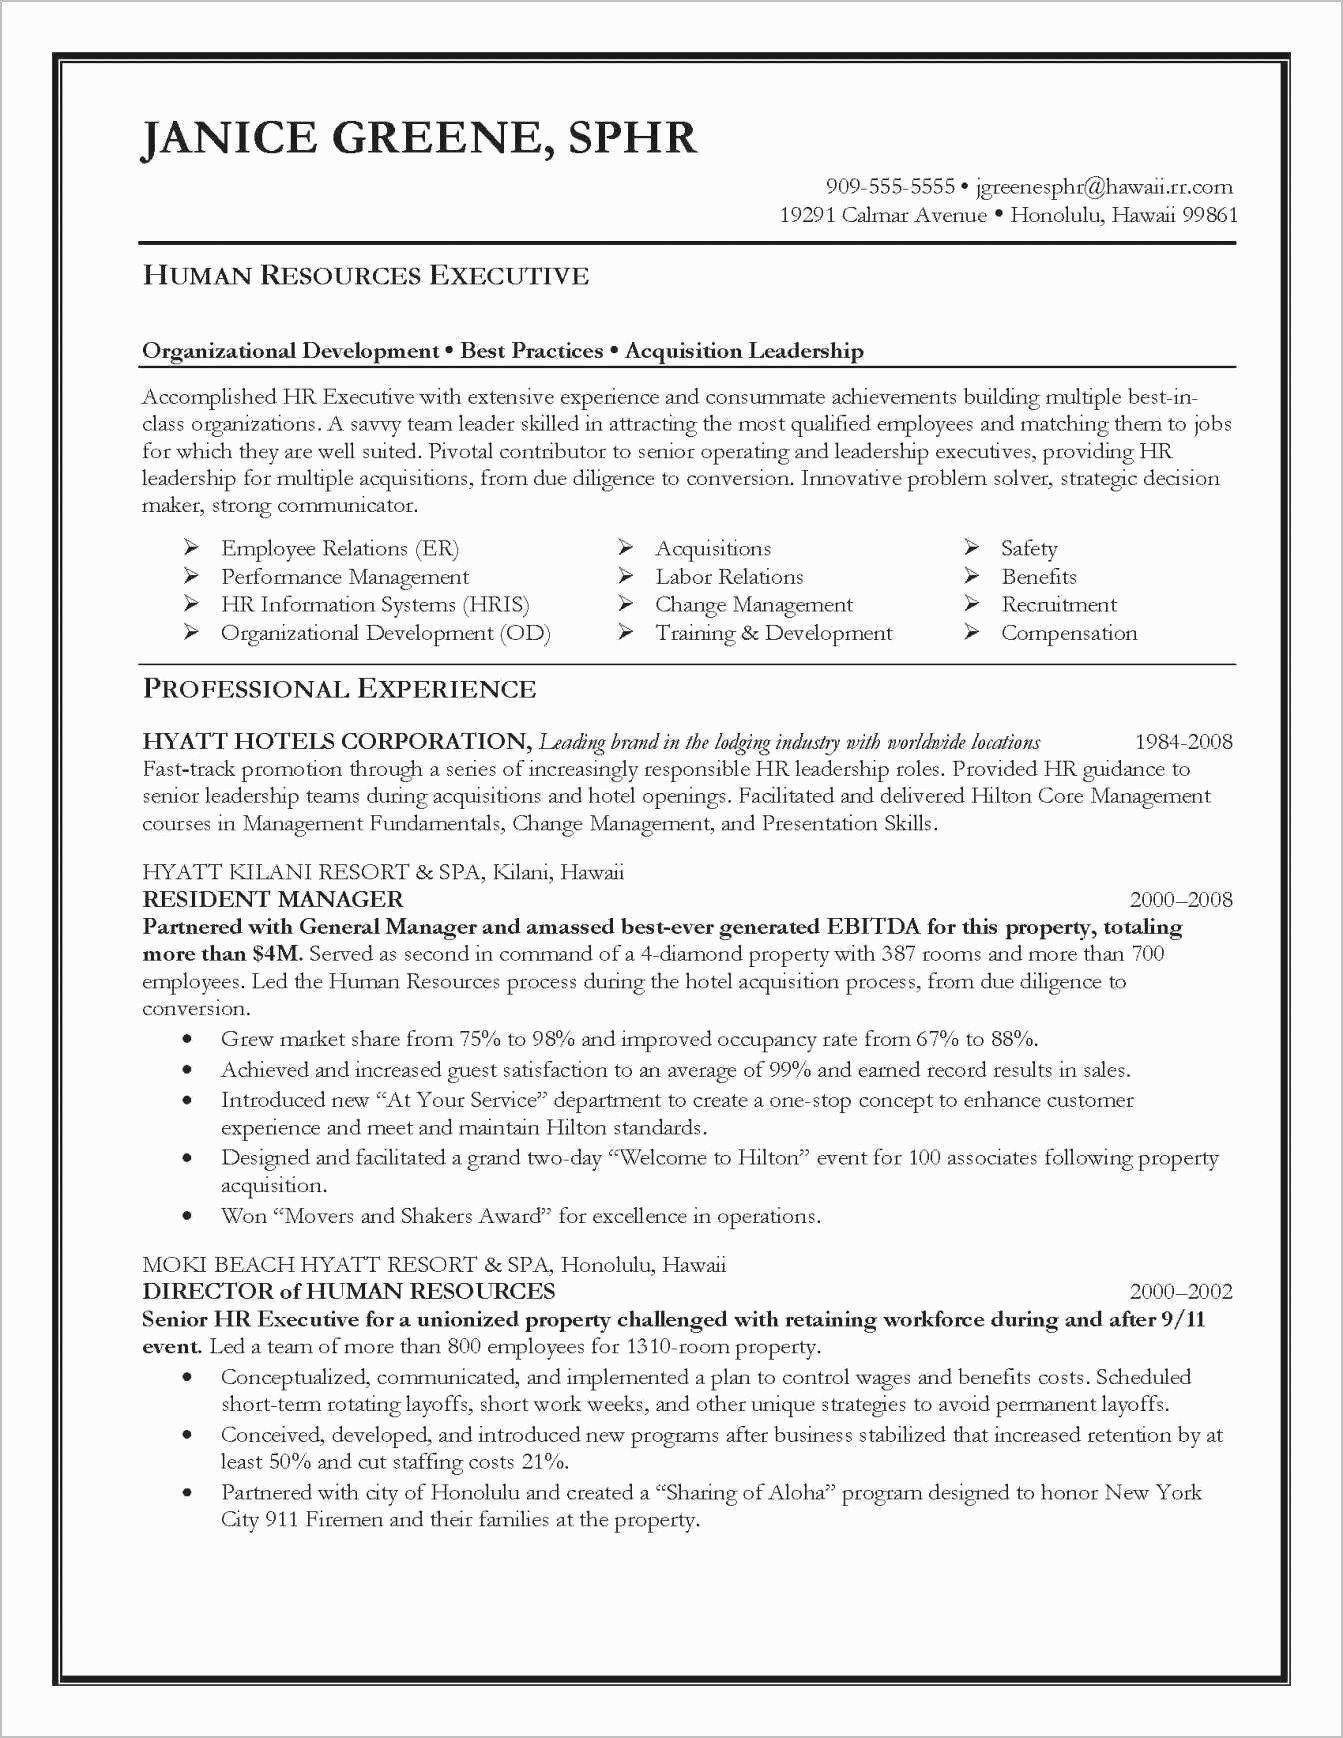 Strategy Map Template Microsoft Word Unique Short Resume Examples Pdf Awesome Gr Swot Human Resources Resume Project Manager Resume Resume Objective Examples